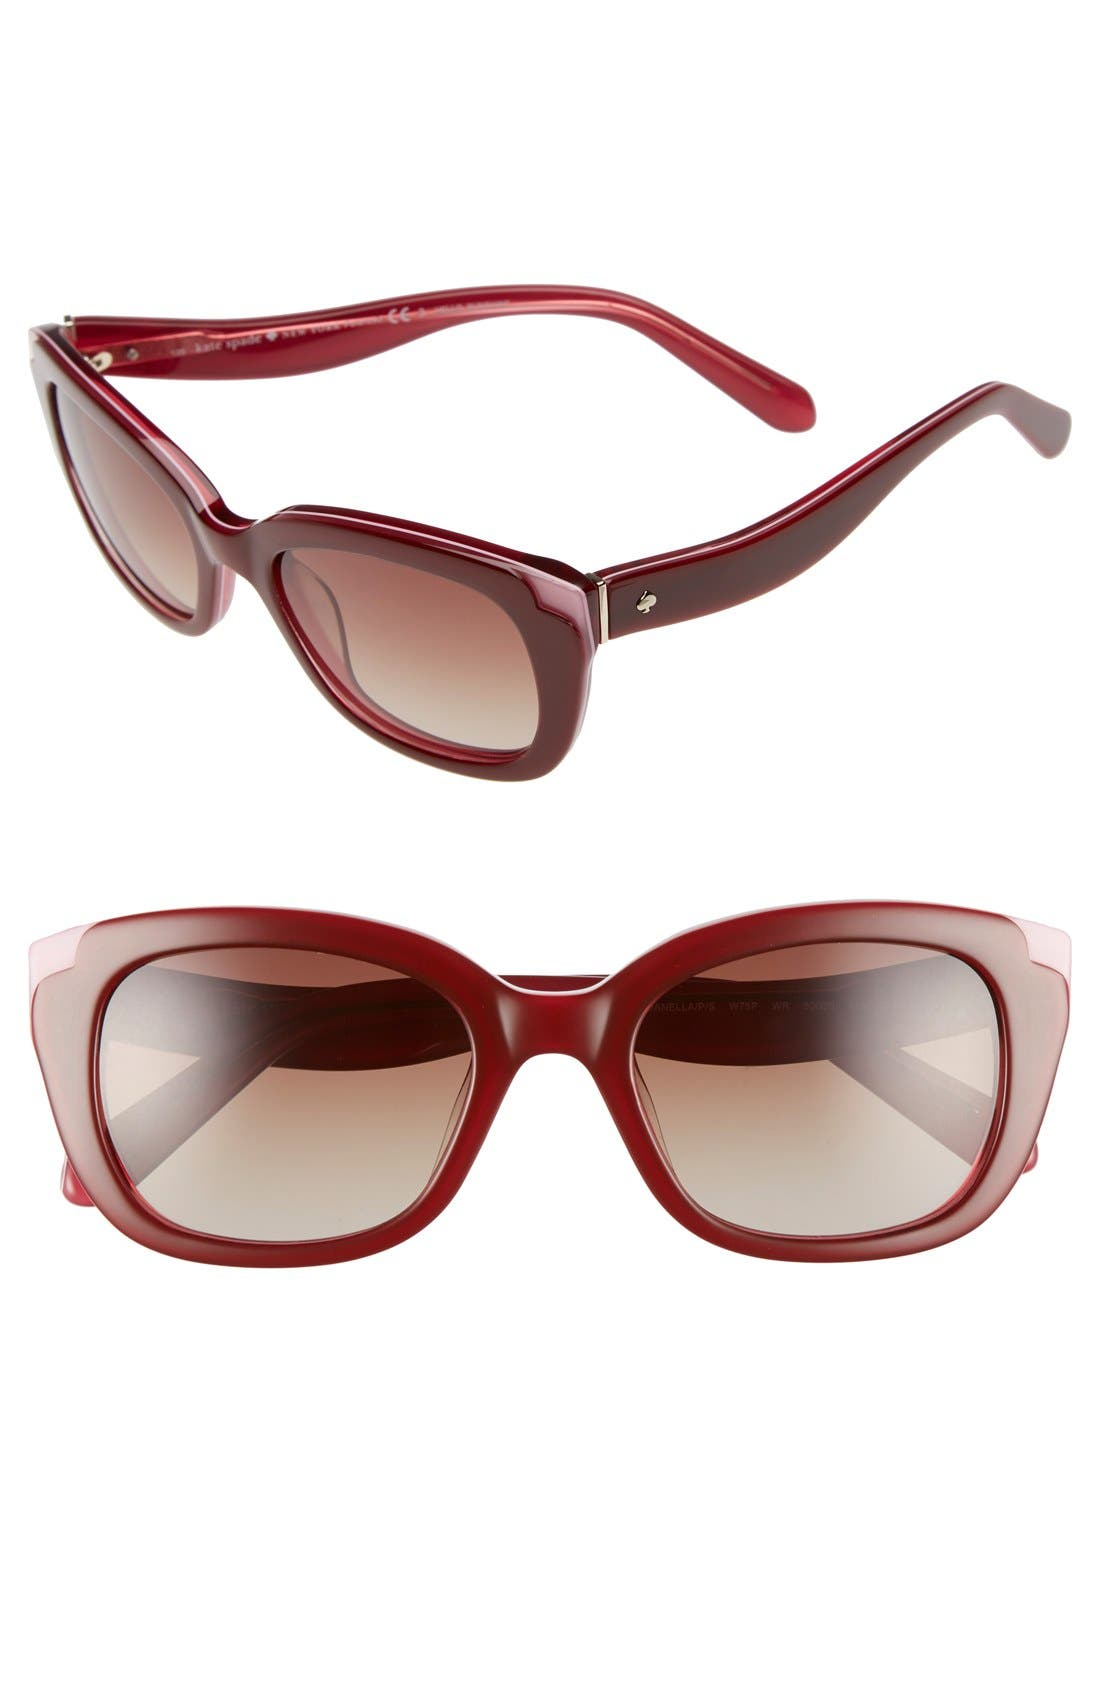 KATE SPADE NEW YORK danella 50mm sunglasses